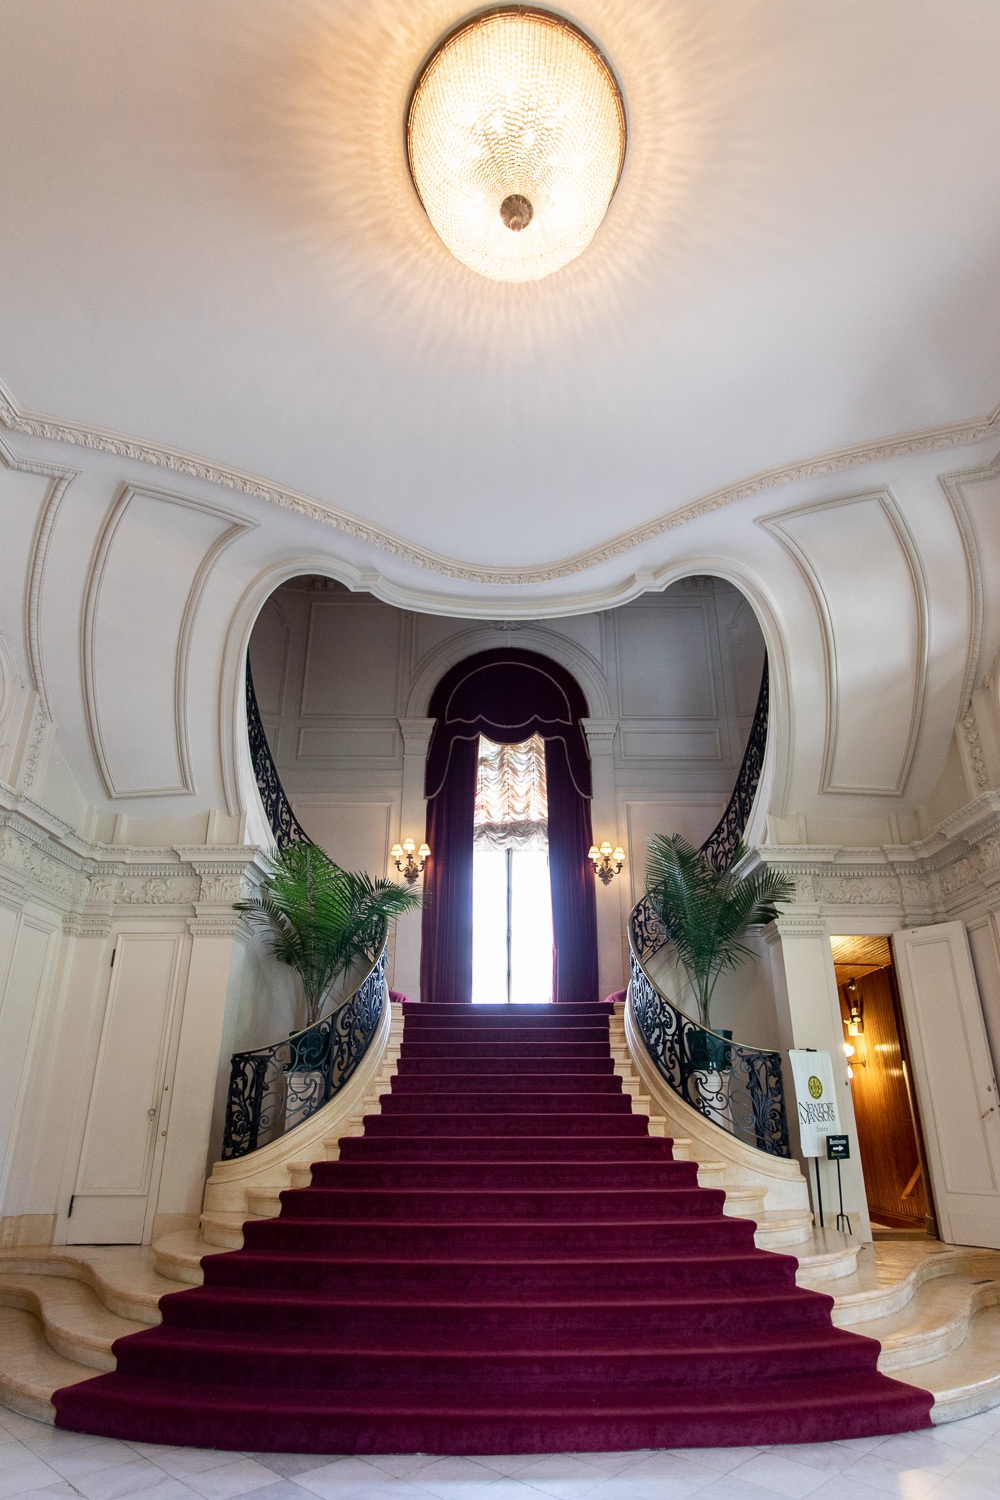 Another view of the grand staircase at Rosecliff.